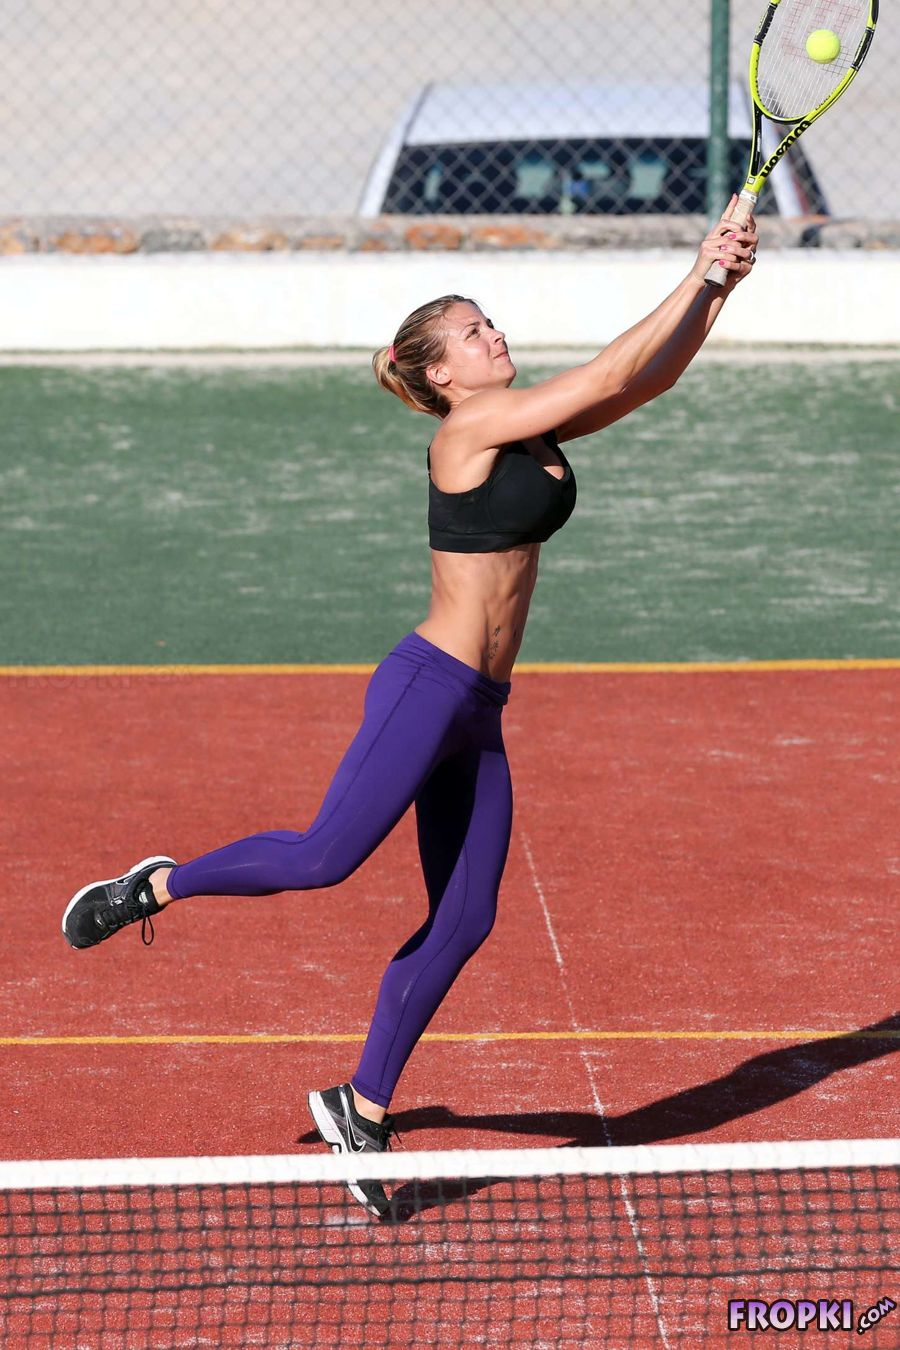 443a16140a154 Gemma Atkinson Playing Tennis in Sports Bra - Page 17